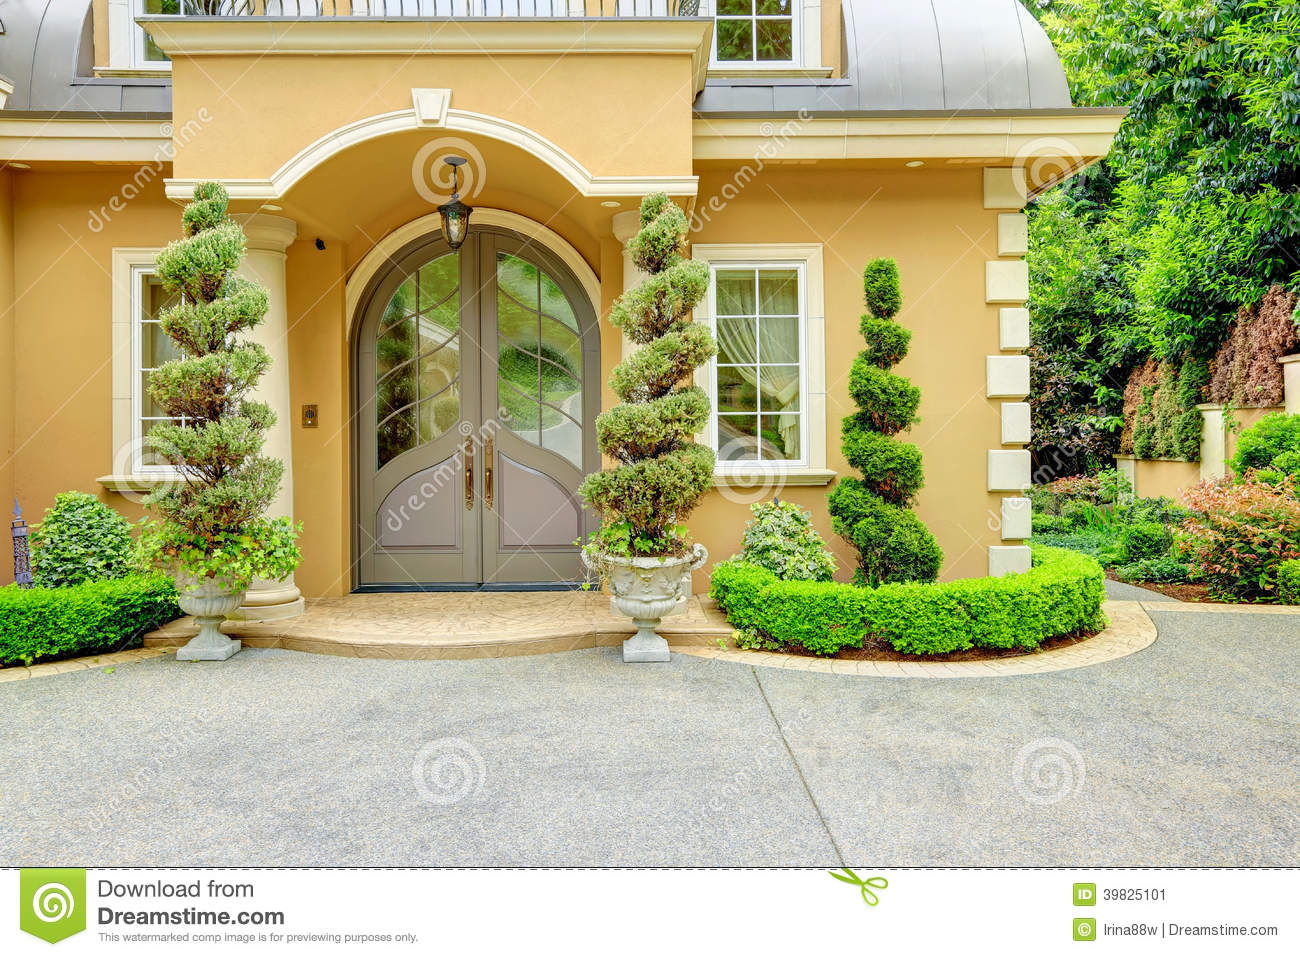 royalty free stock photo download luxury house exterior - Luxury House Exterior